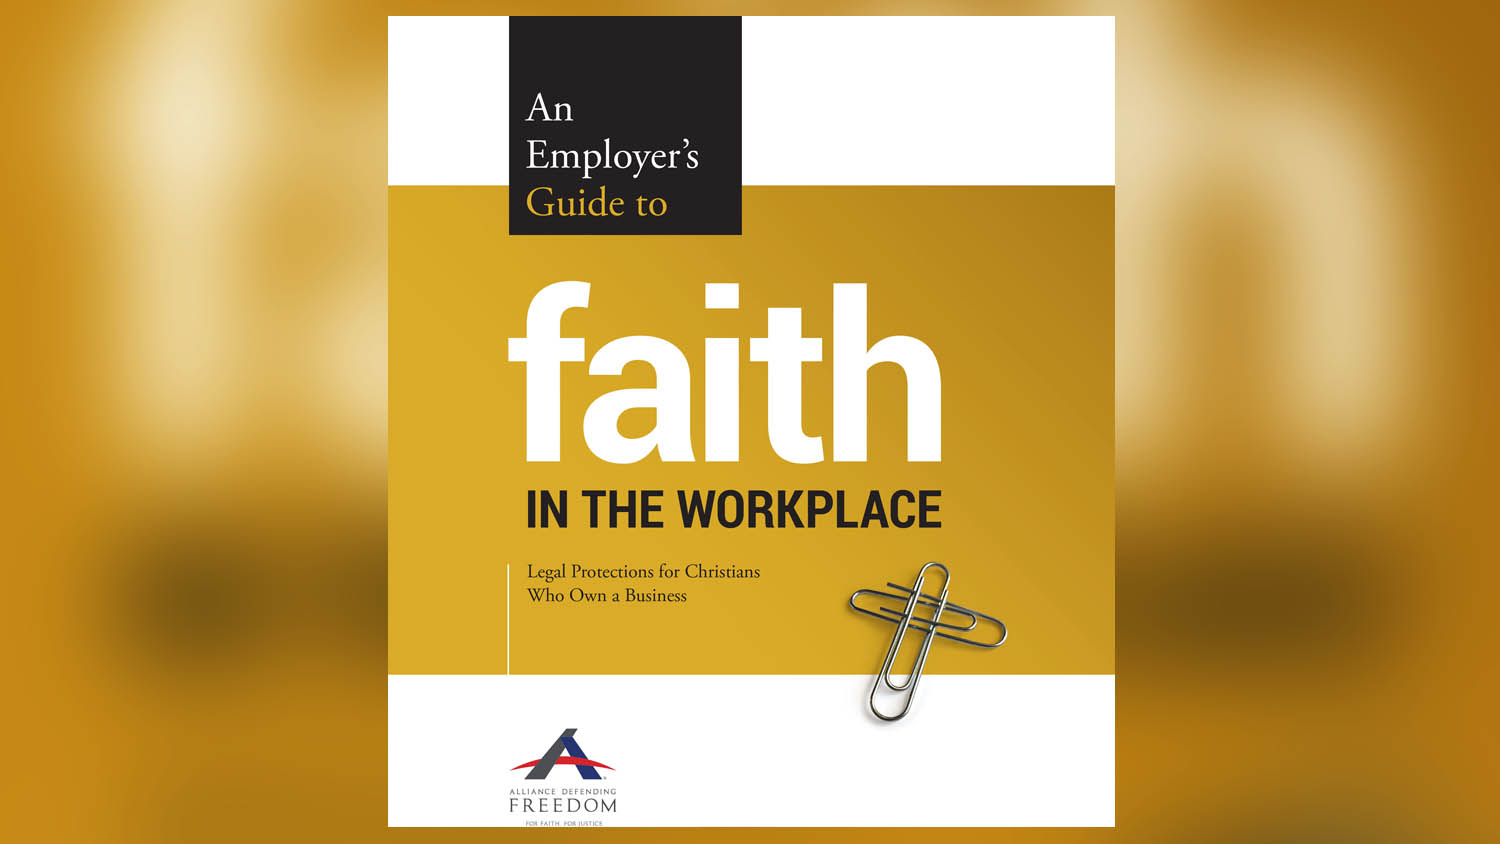 Accommodating religious freedon in the alaskan workplace